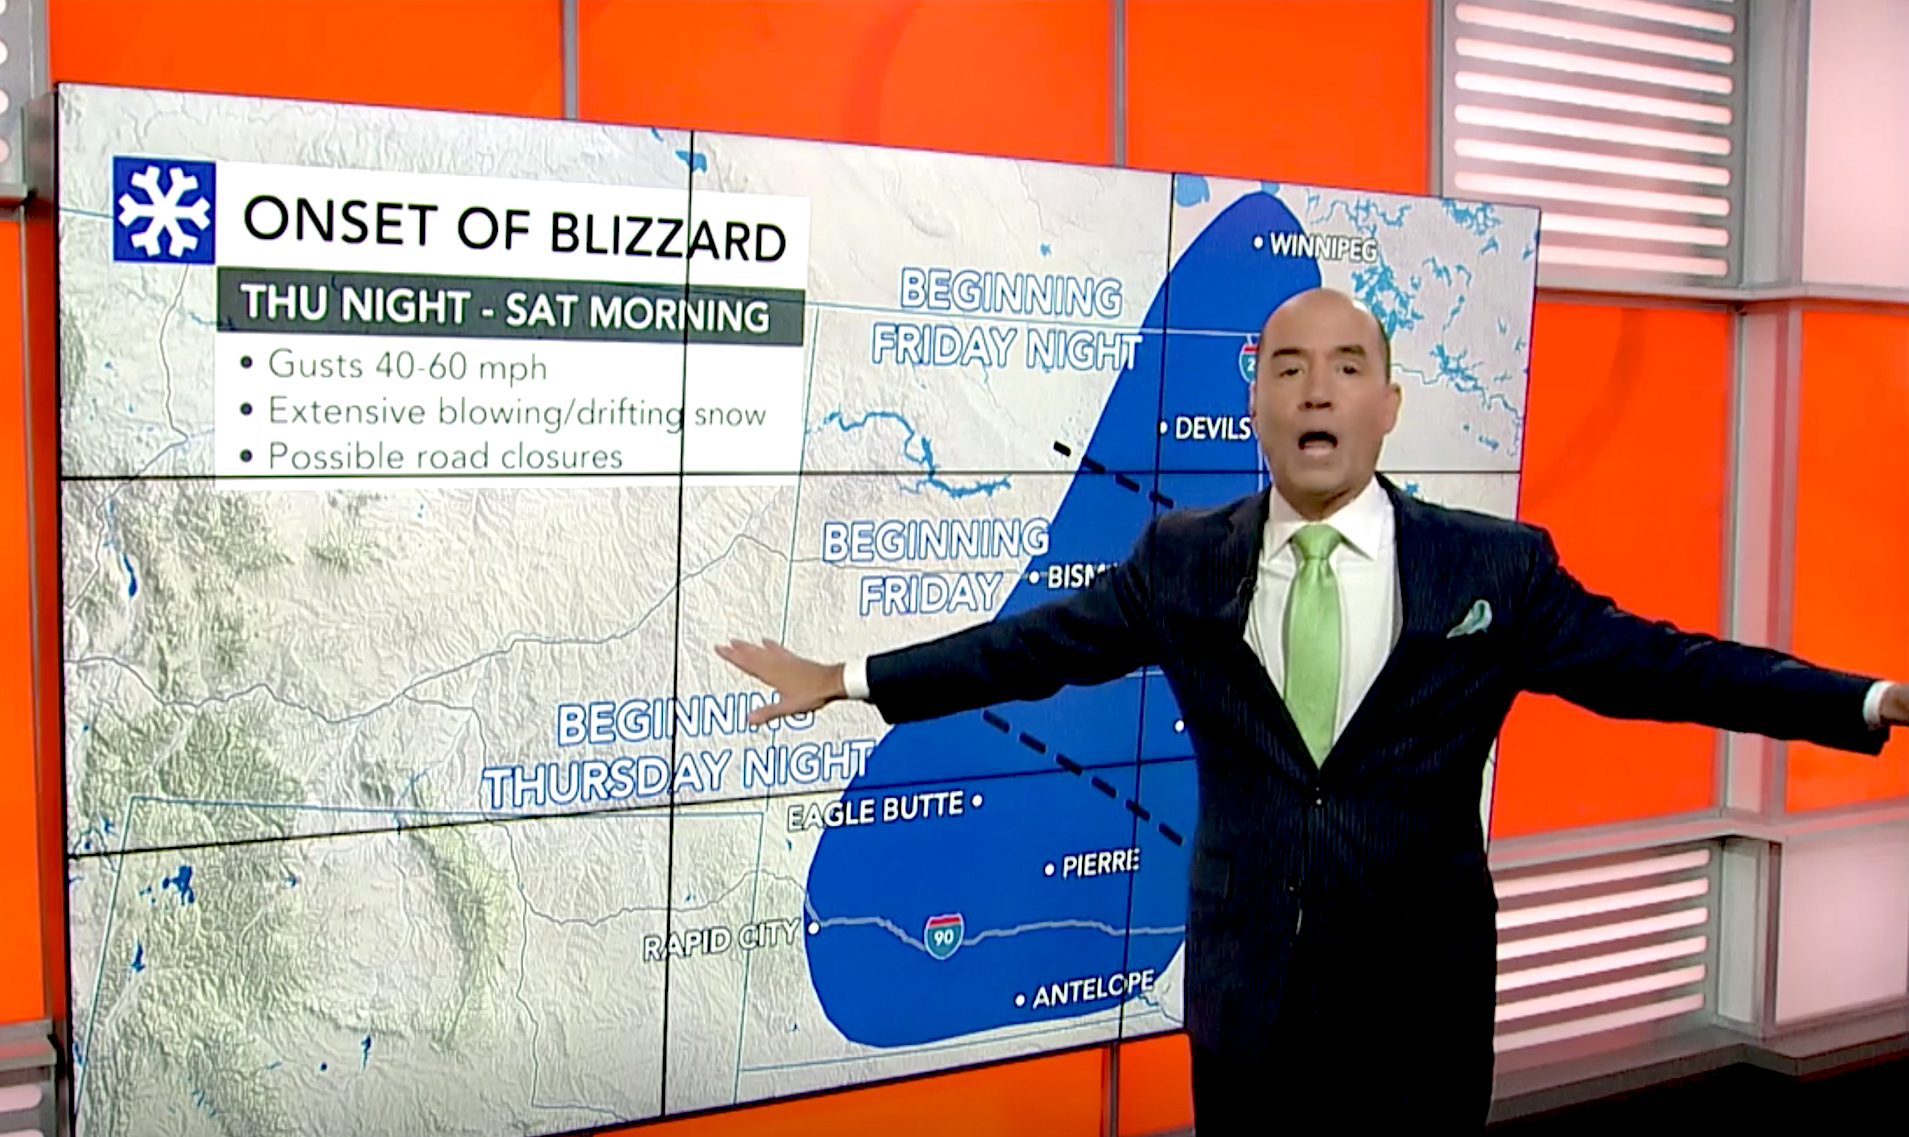 Bernie Rayno breaks down major winterlike storm lashing northern US. Wild temperature swings, gusty winds, heavy snow, blizzard conditions -- AccuWeather Chief Broadcast meteorologist discusses all of that and where the storm is going to erupt into 'an all-out blizzard.'